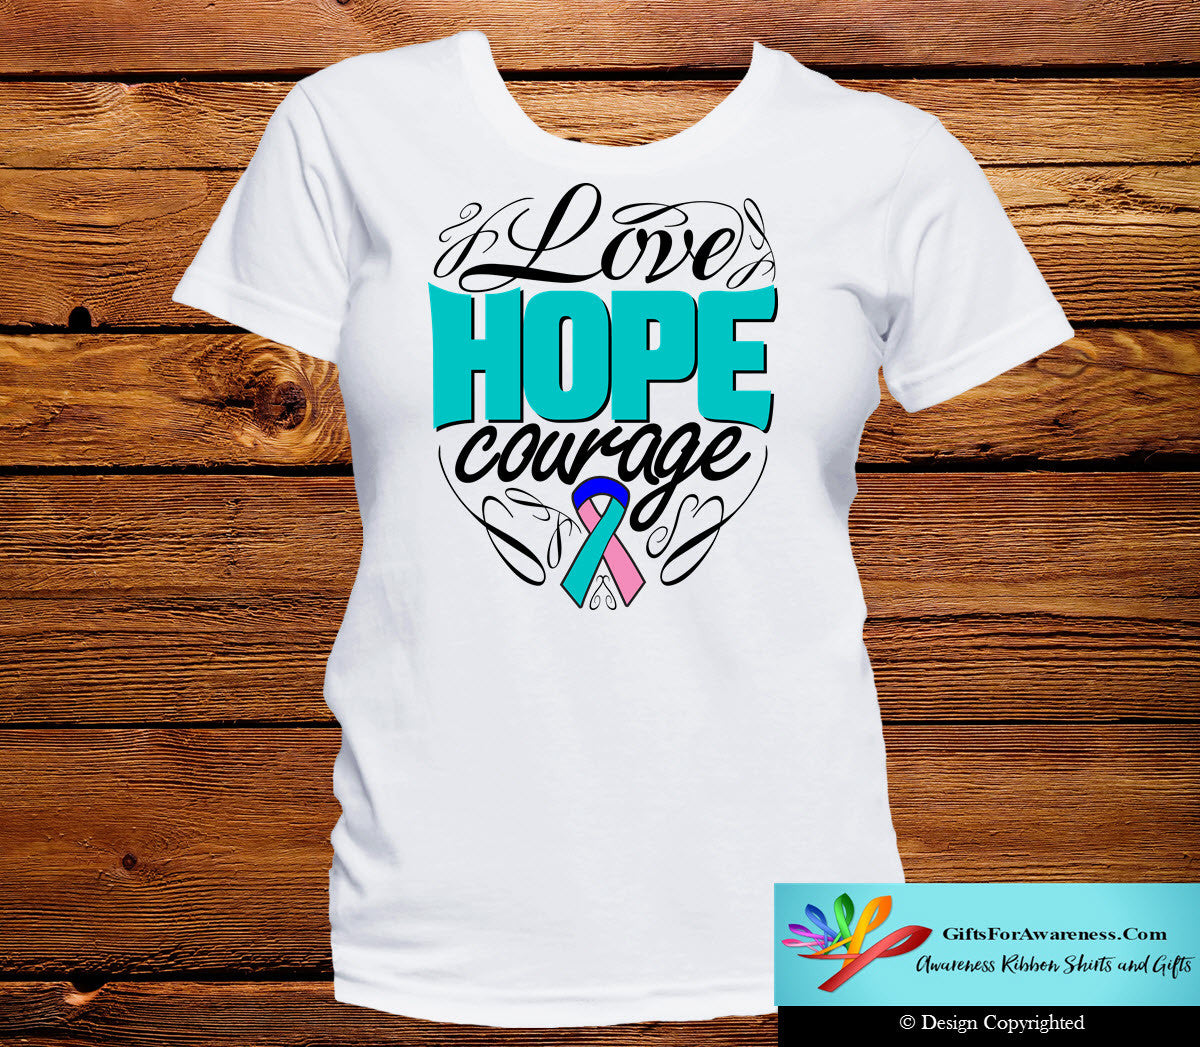 Thyroid Cancer Love Hope Courage Shirts - GiftsForAwareness